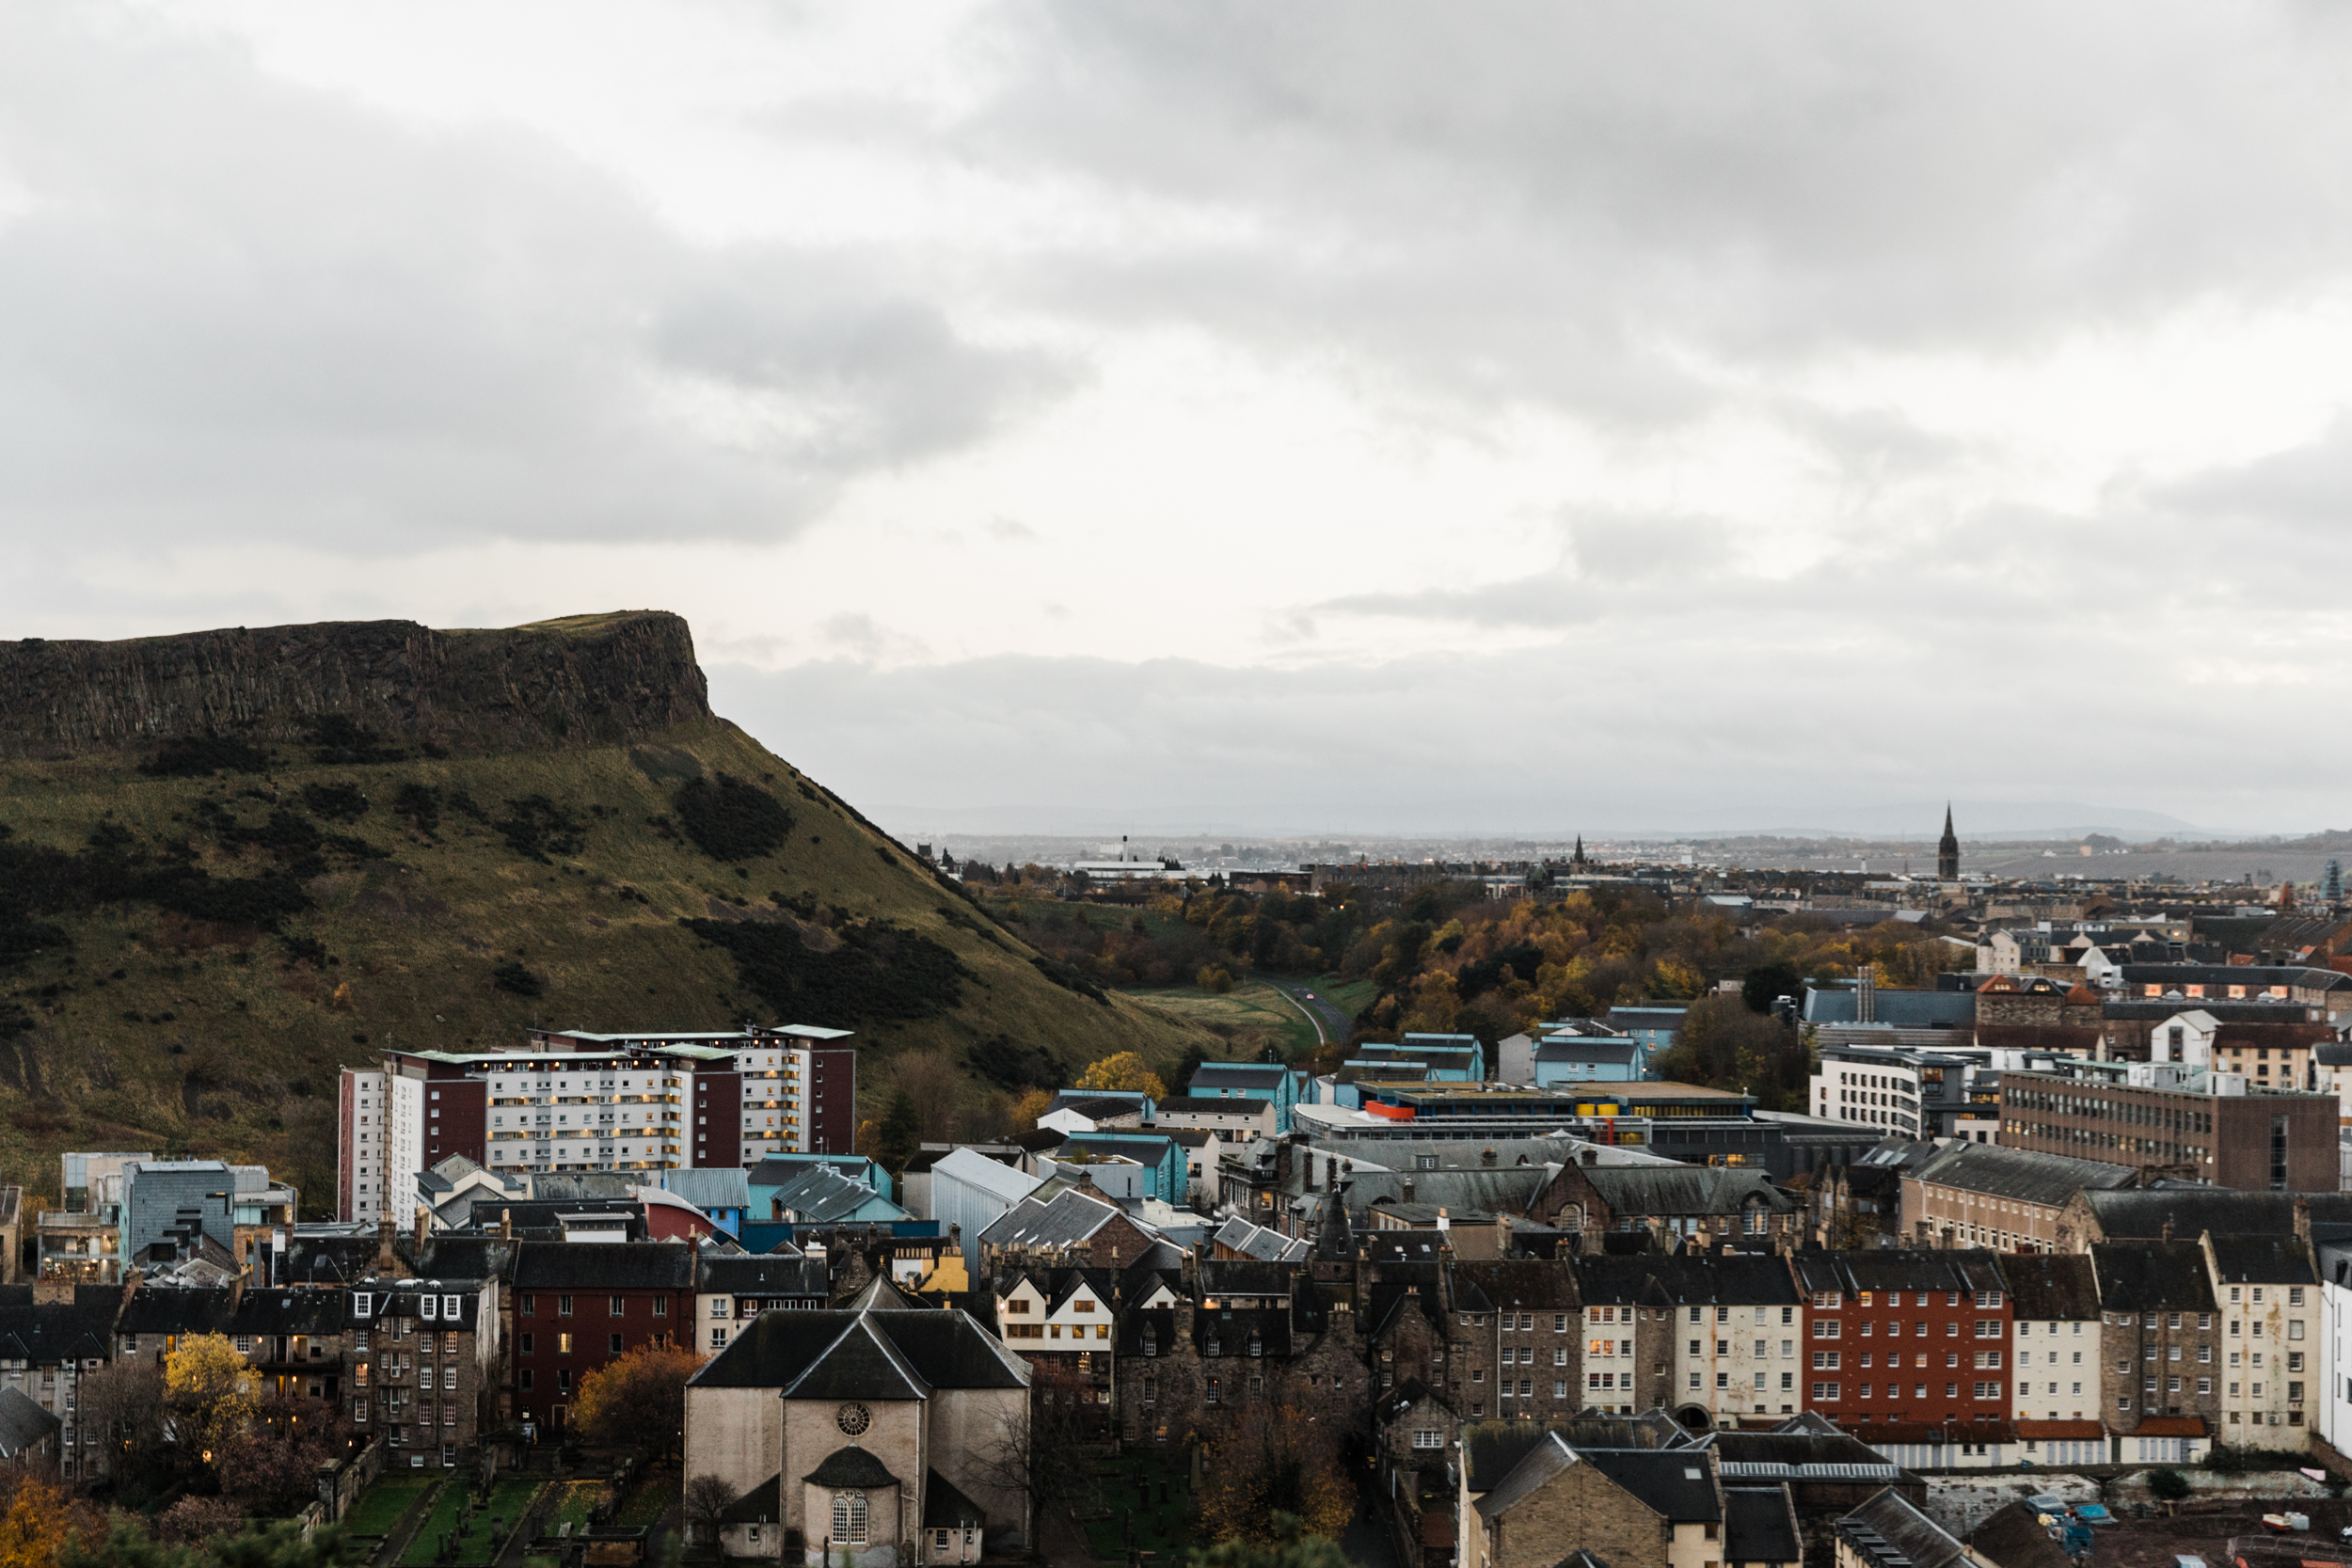 london-edinburgh-1122.jpg